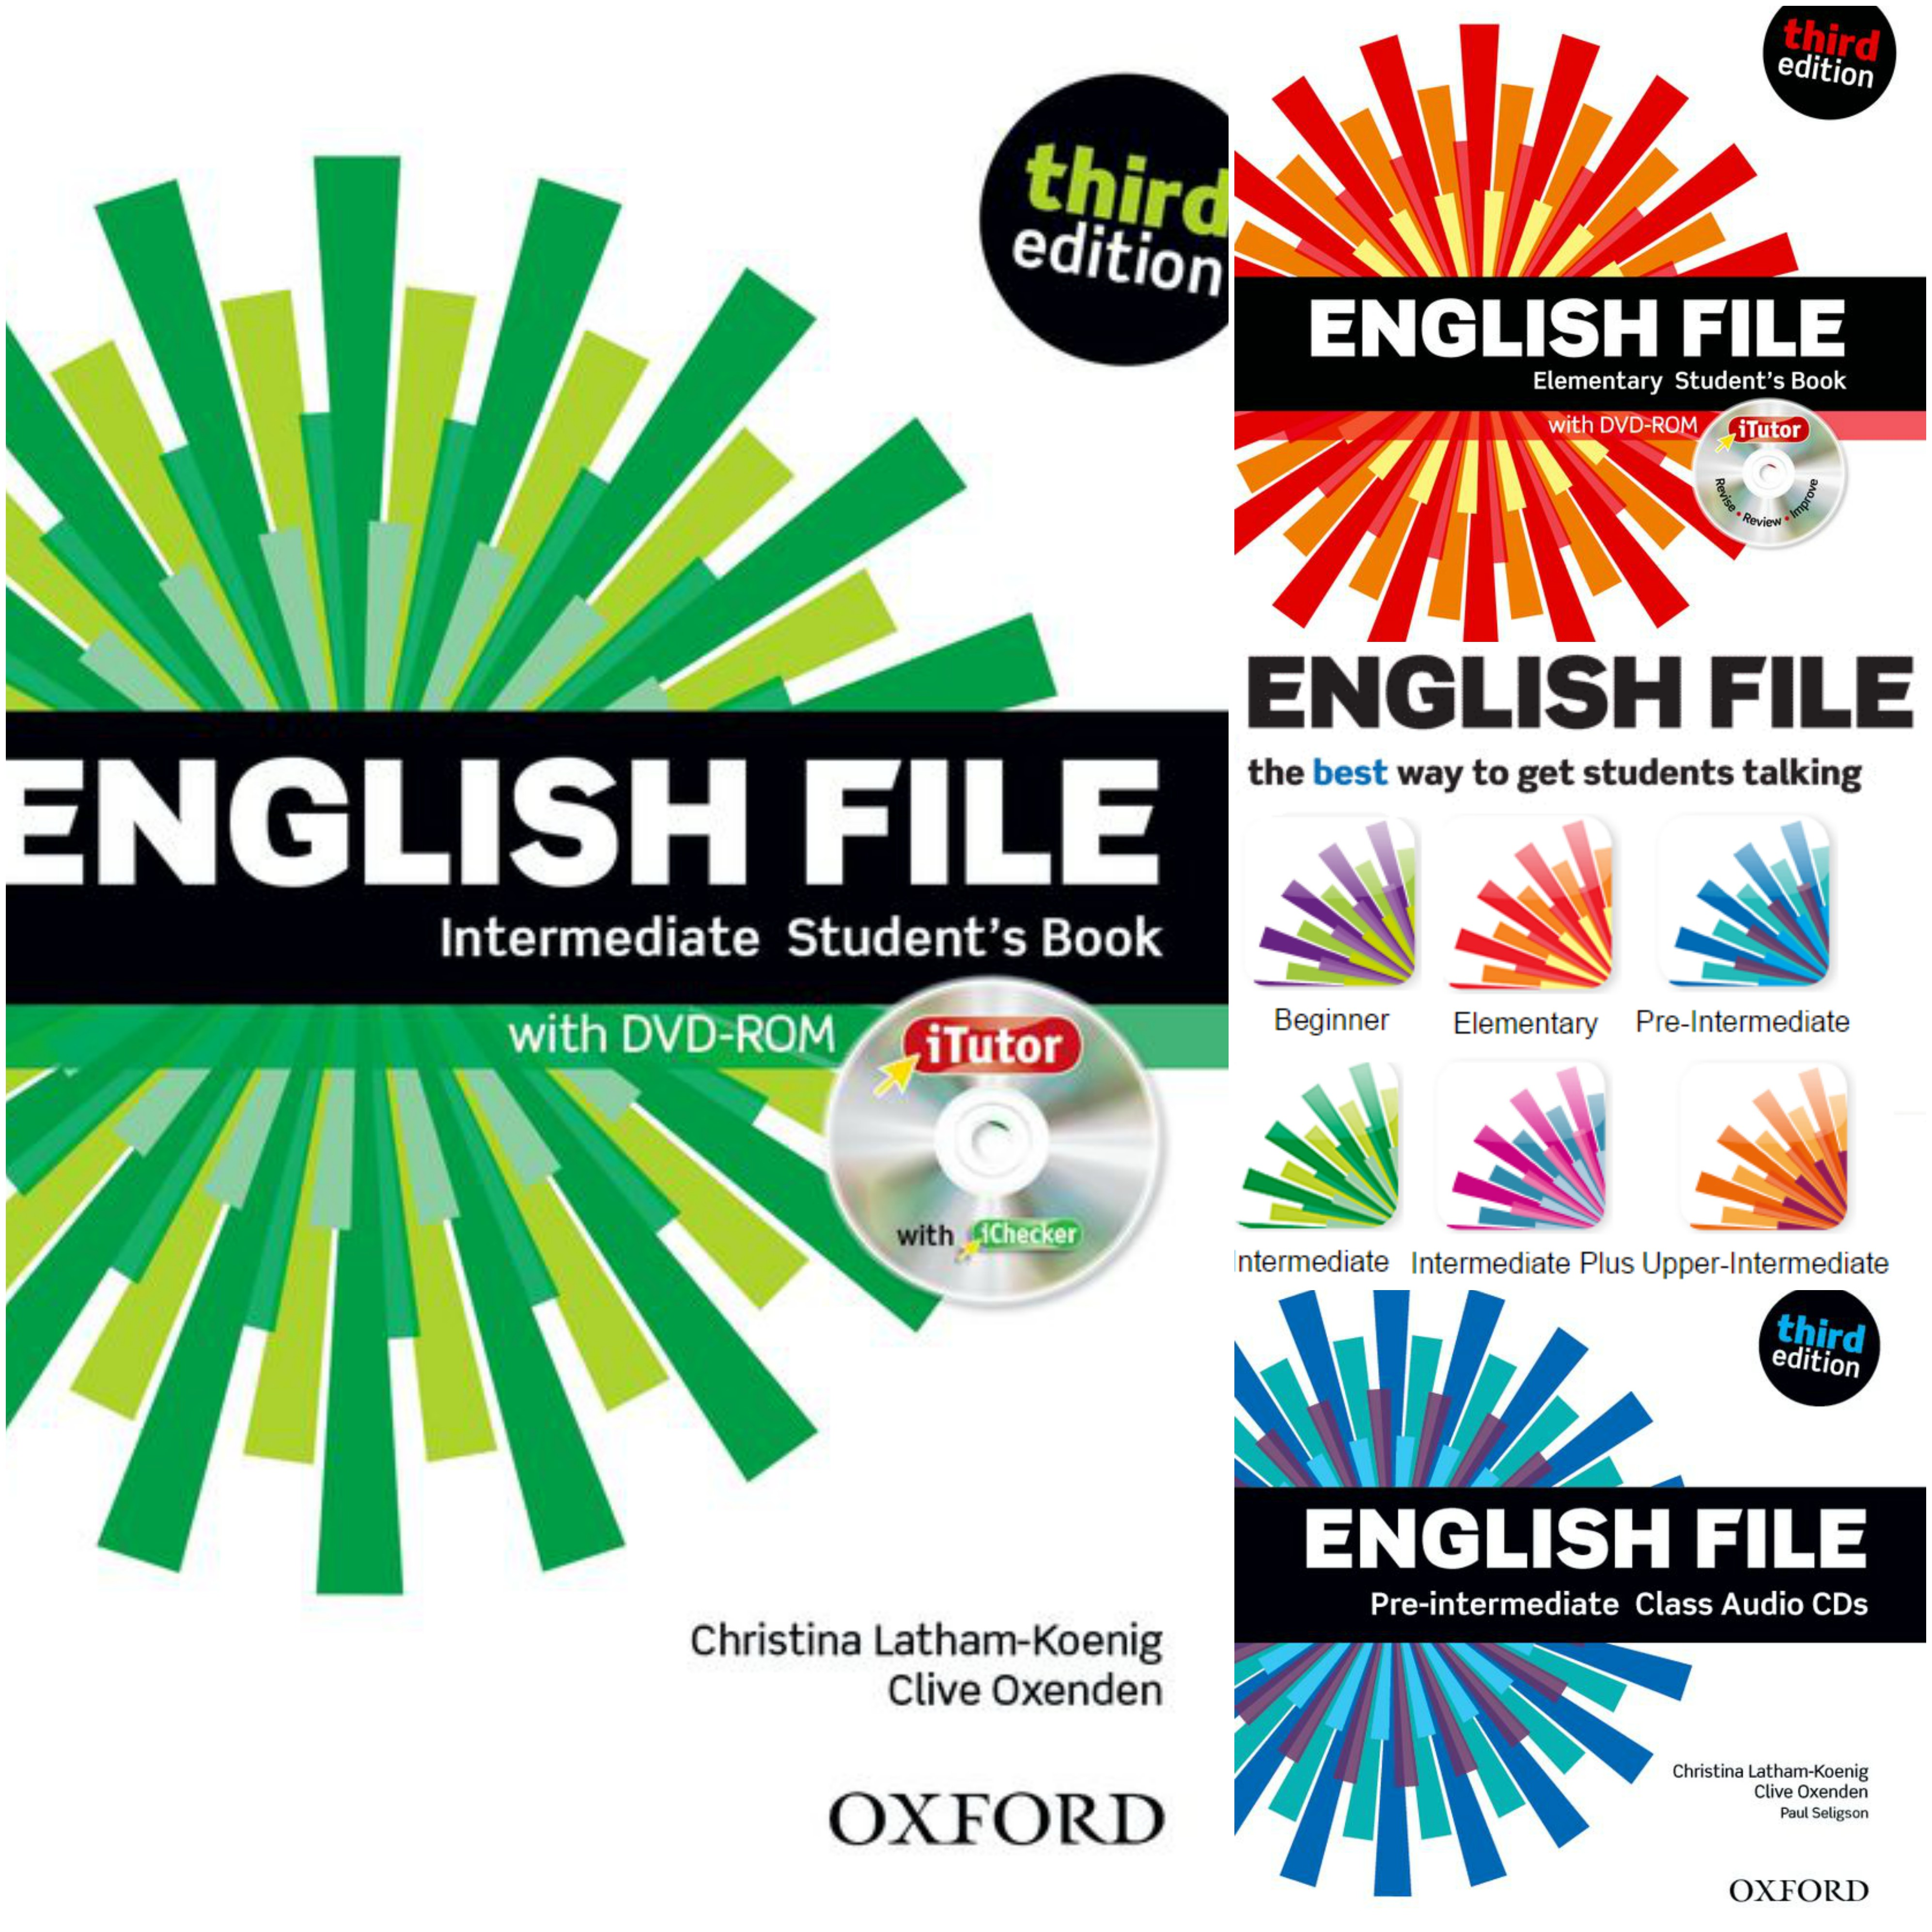 english file 3 kiadas uj